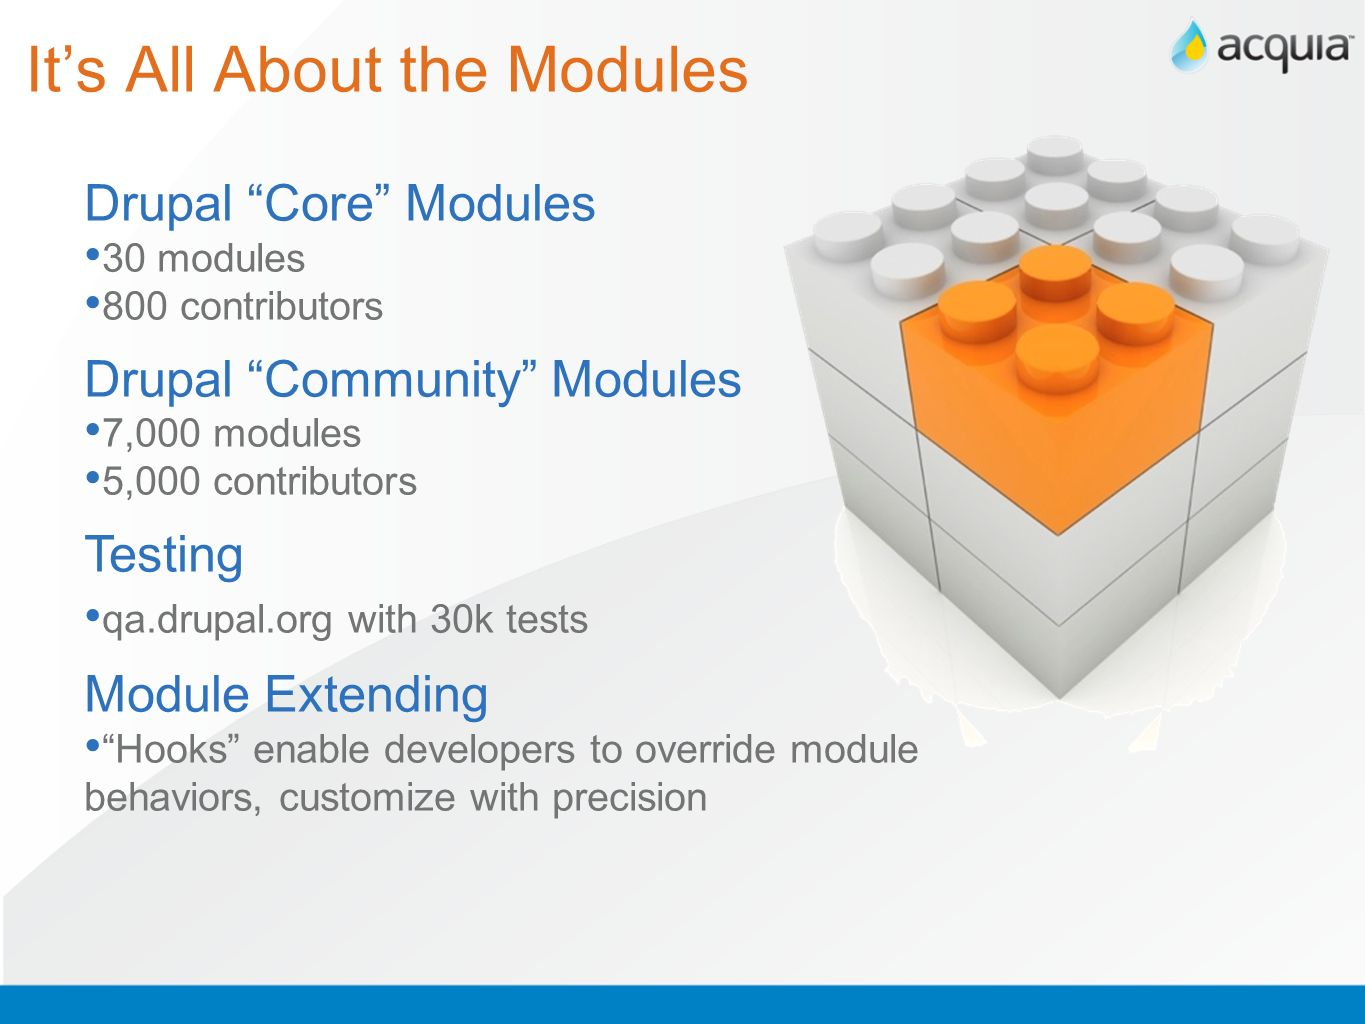 It's All About the Modules